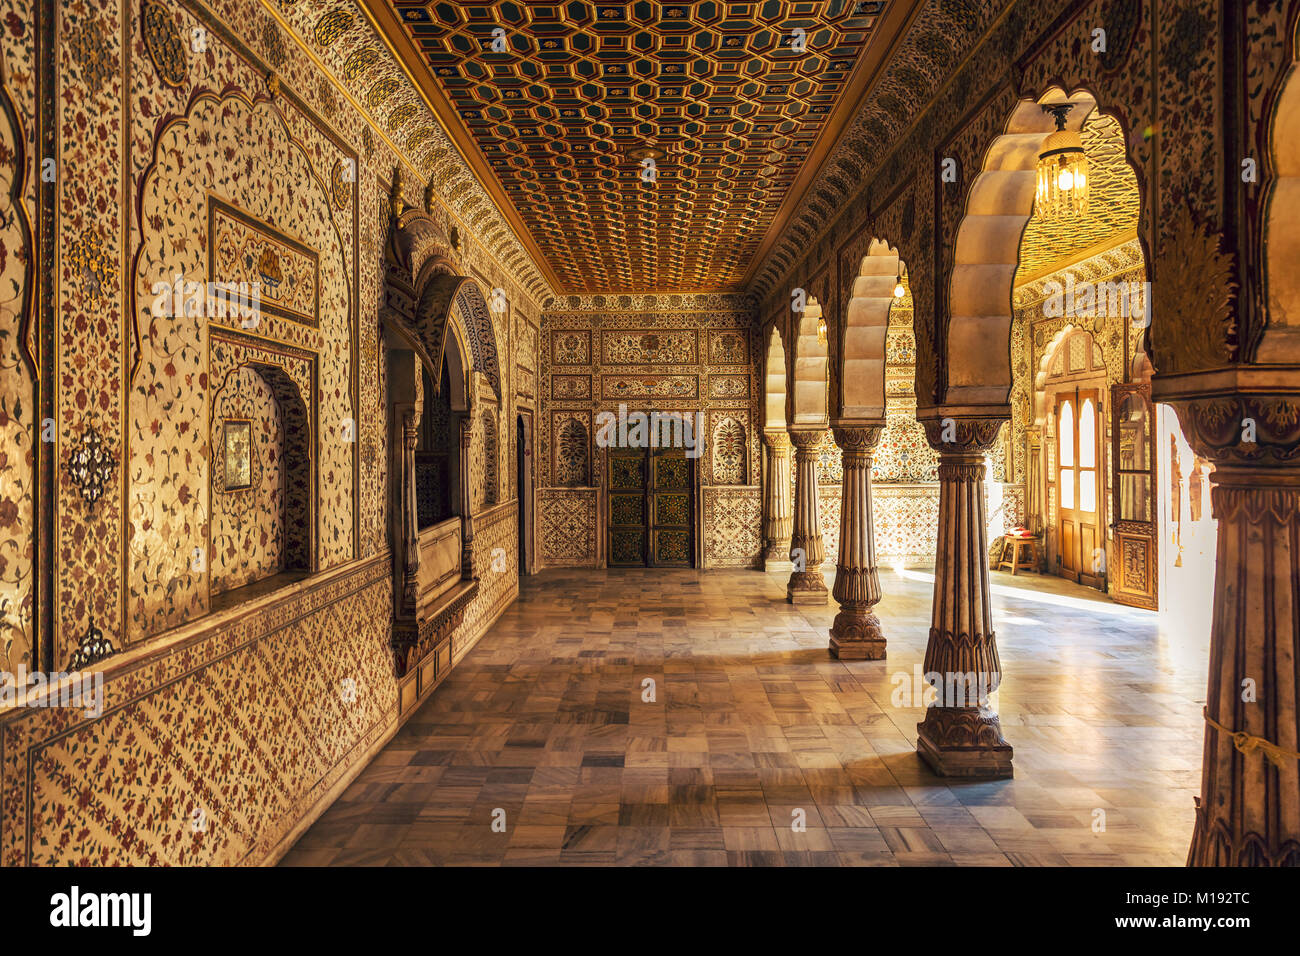 Junagarh Fort Bikaner Rajasthan Royal Palace Interior Architecture Details  With Gold Decoration Artwork.